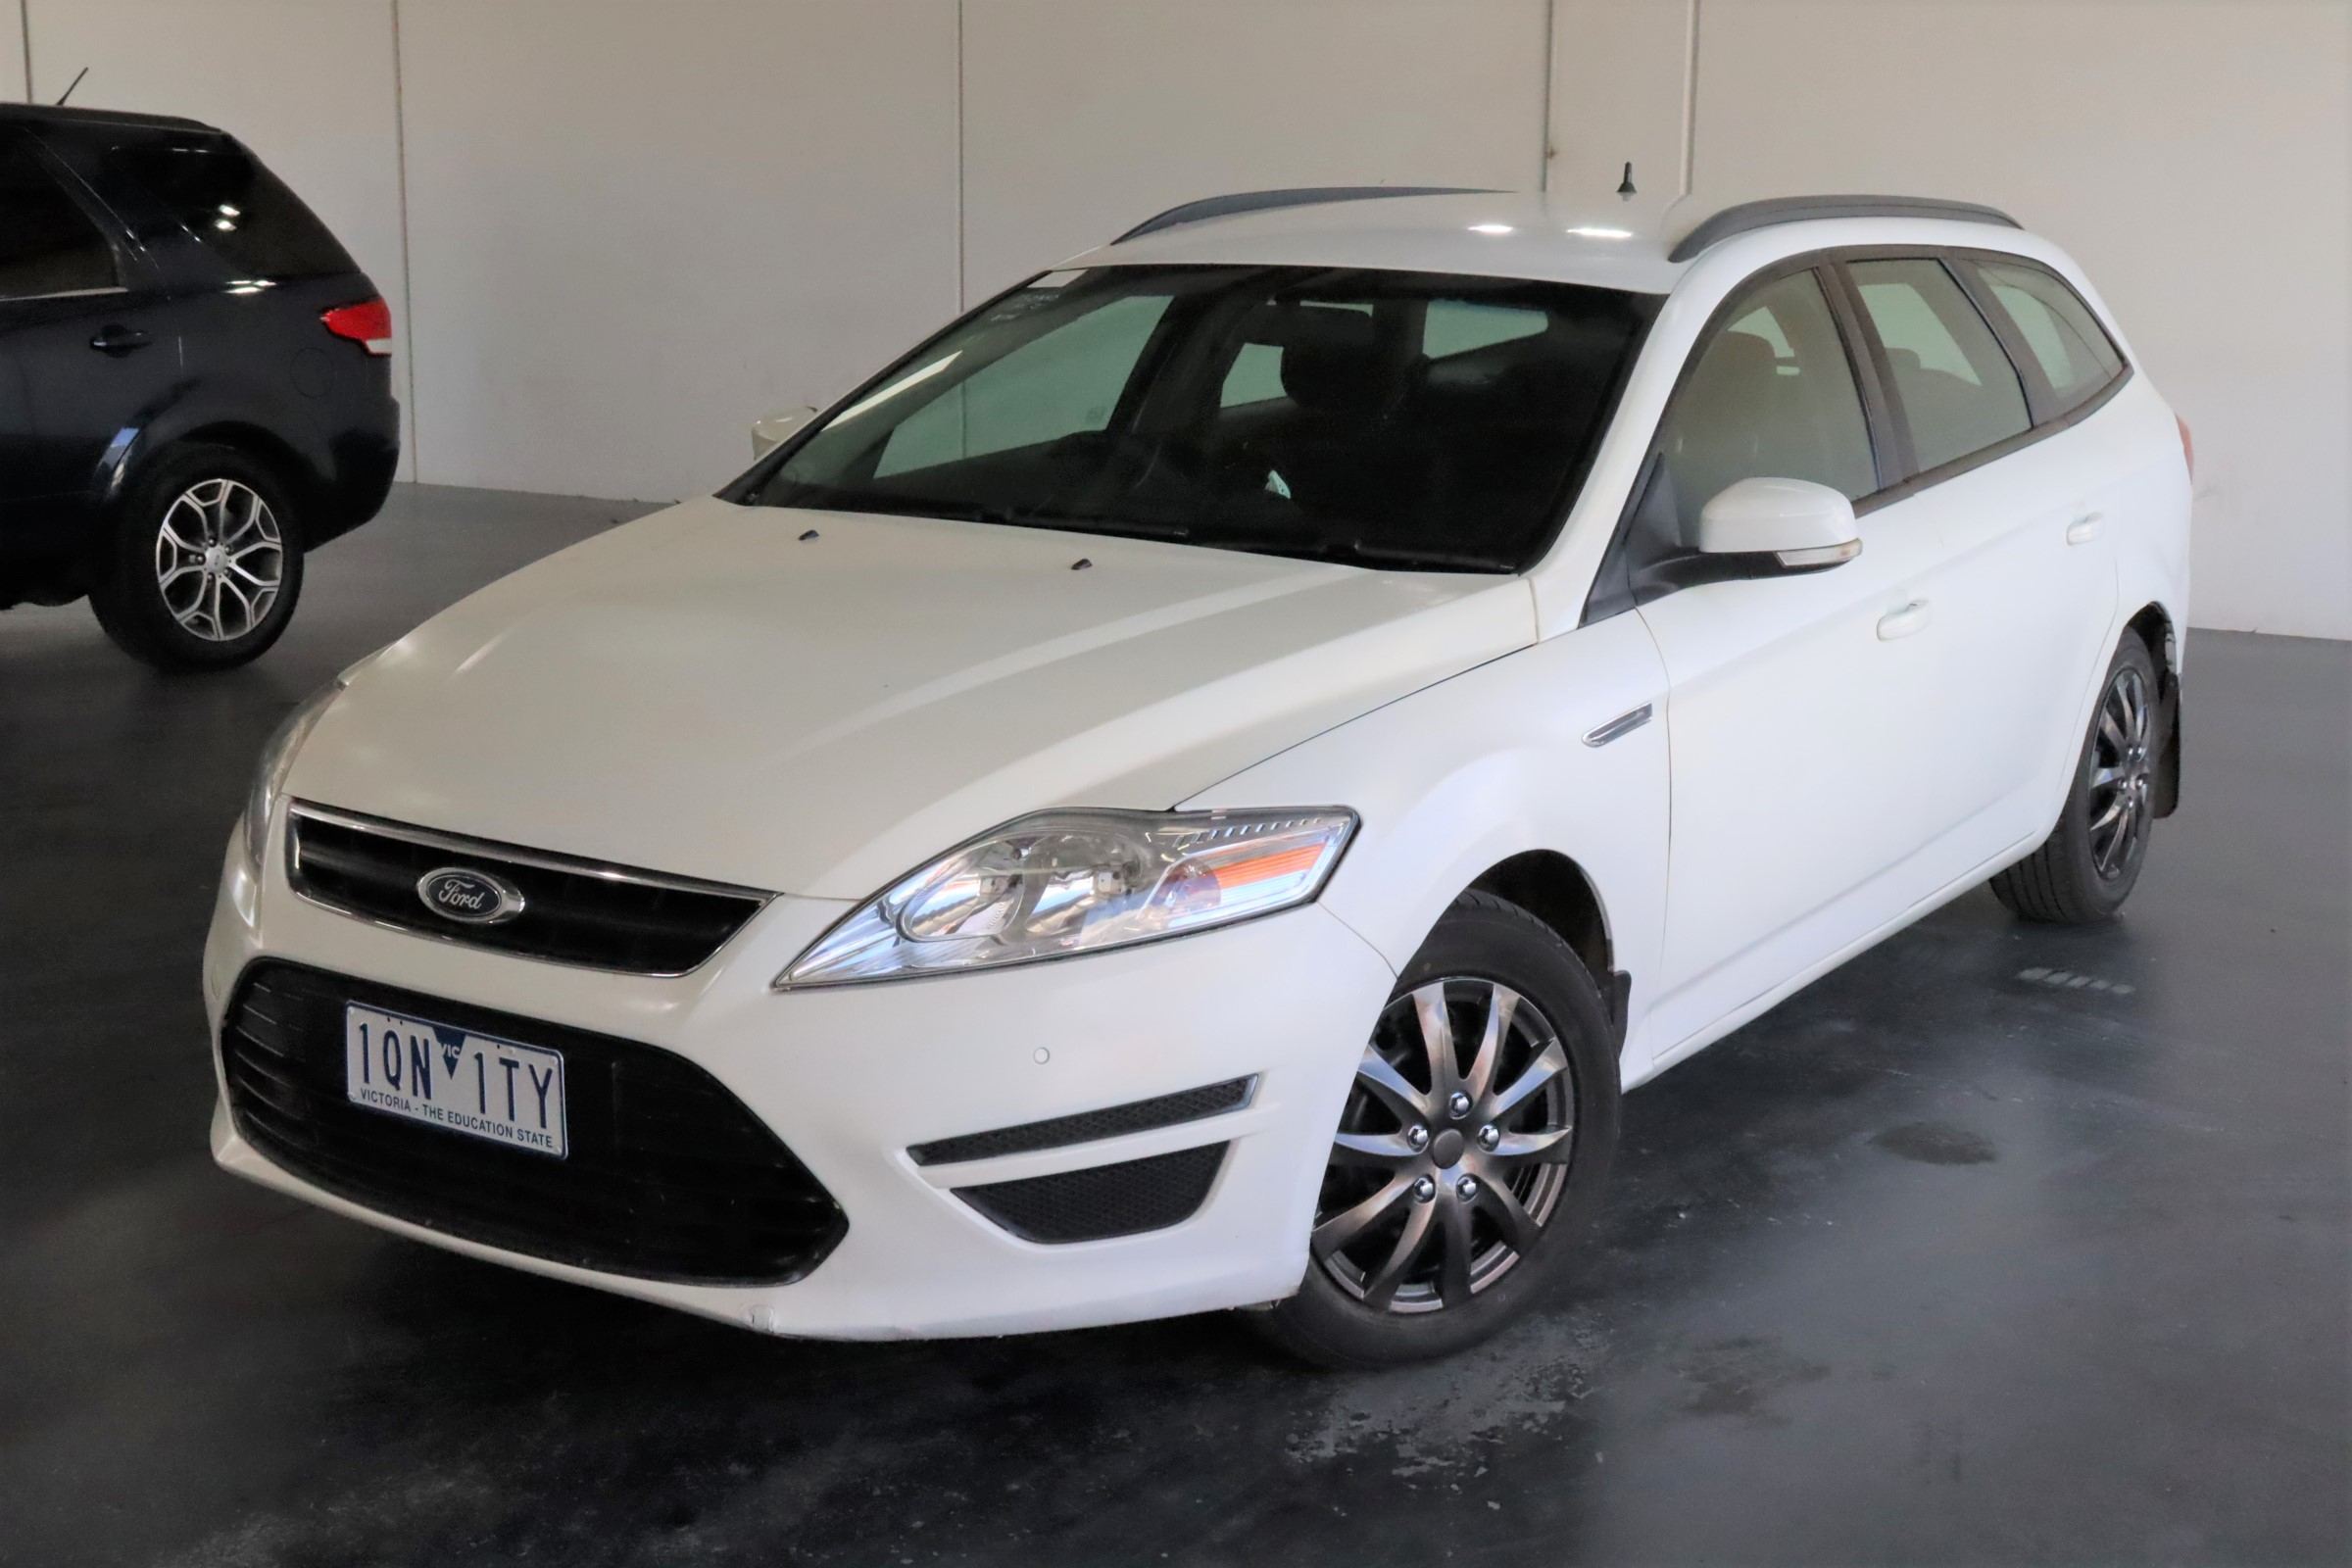 2013 Ford Mondeo LX TDCi MC Turbo Diesel Automatic Wagon